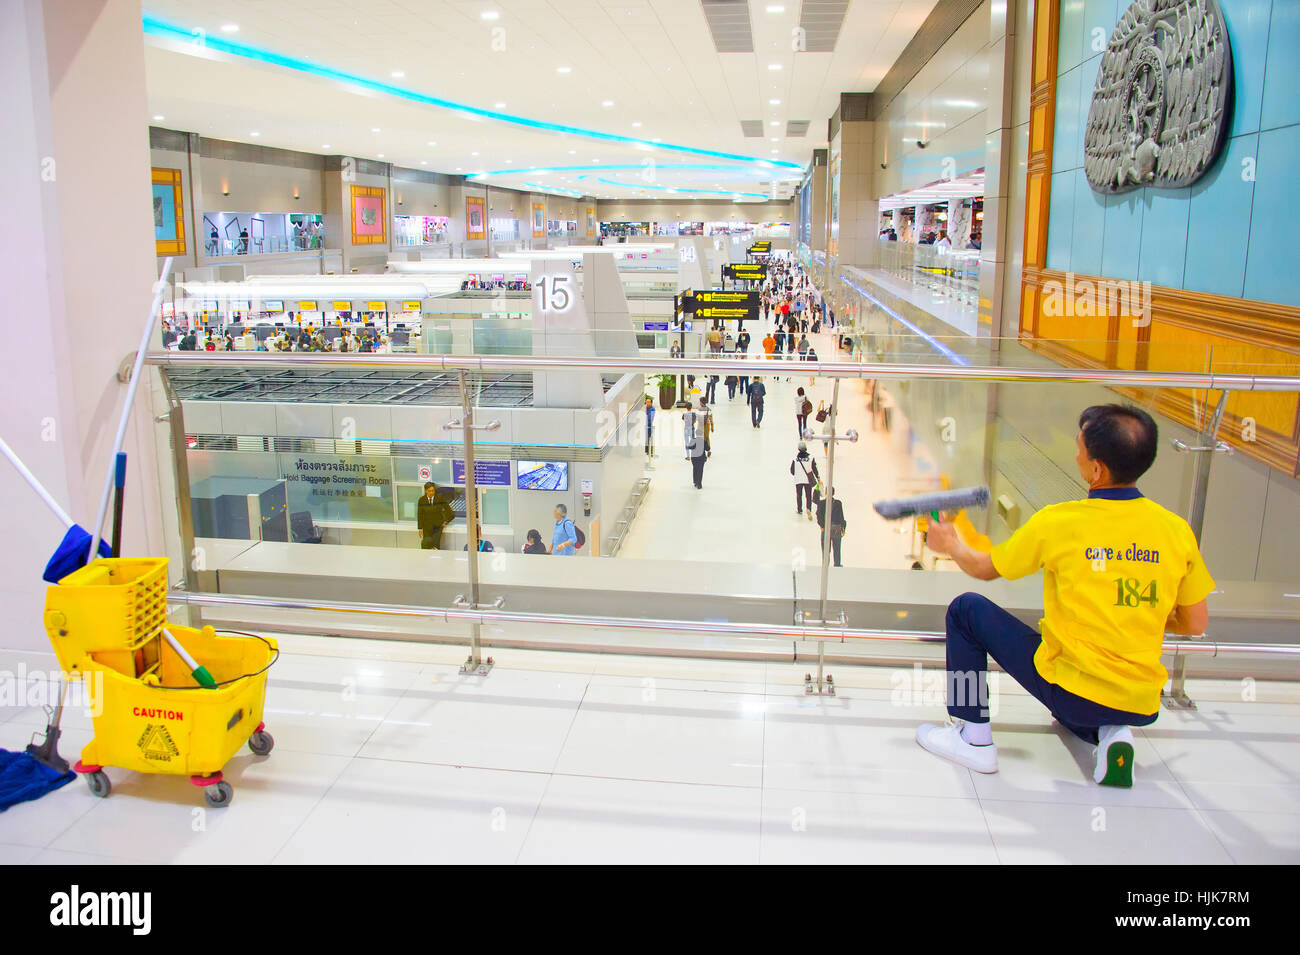 Cleaning service at work in the Don Mueang International Airport . - Stock Image